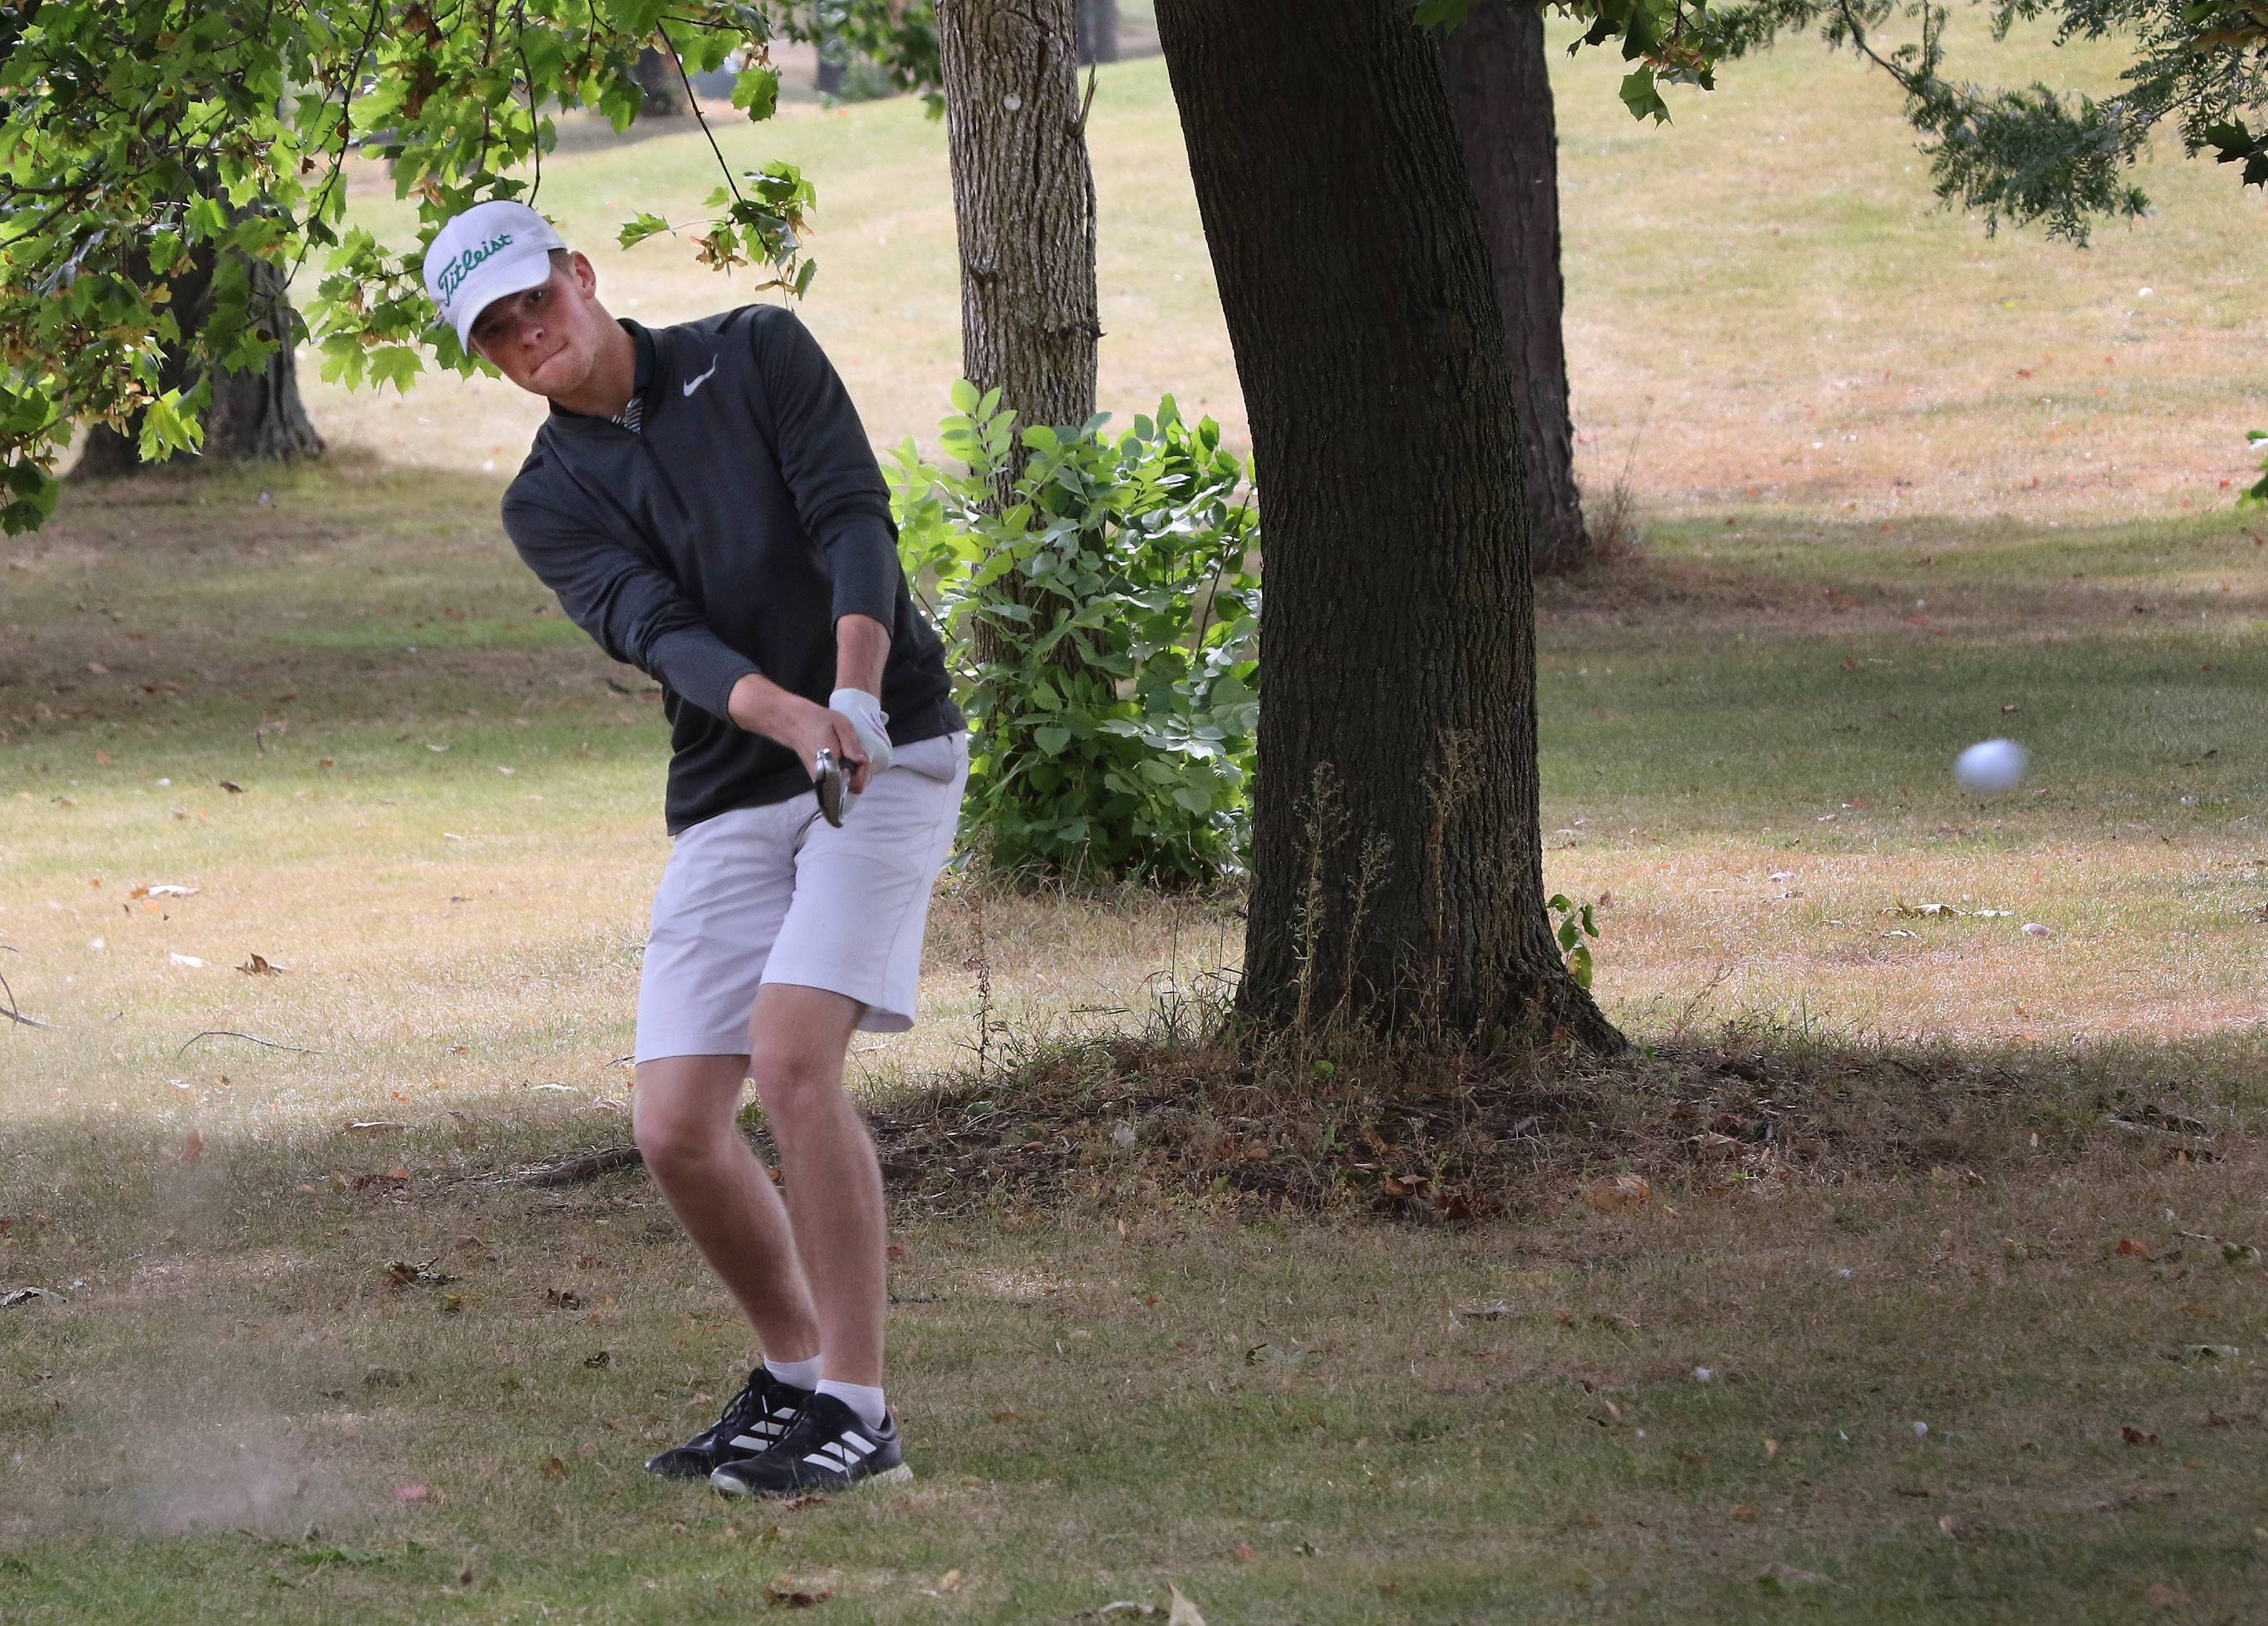 Grayslake Central's Alec Novak hits from underneath a tree on the ninth hole during the boys golf regional Tuesday at Midlane Golf Resort in Wadsworth.